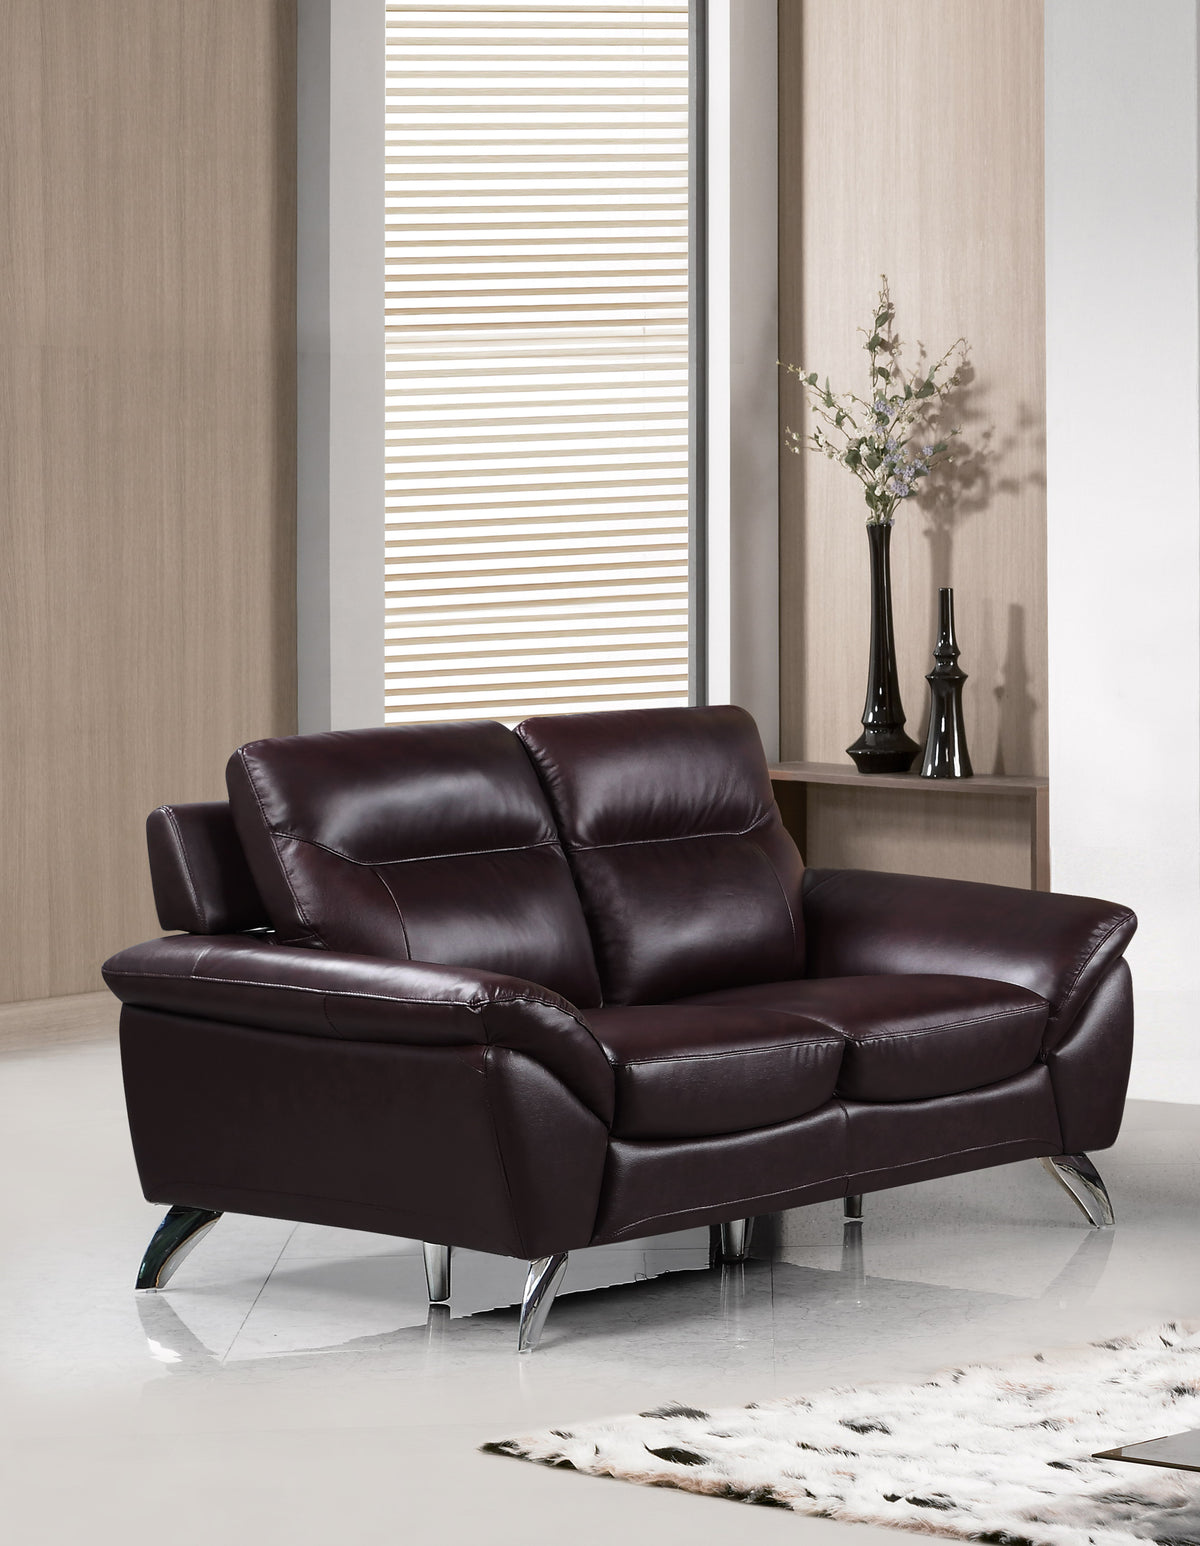 Cortesi Home Contemporary Madison Genuine Leather Loveseat, Deep Merlot 60""